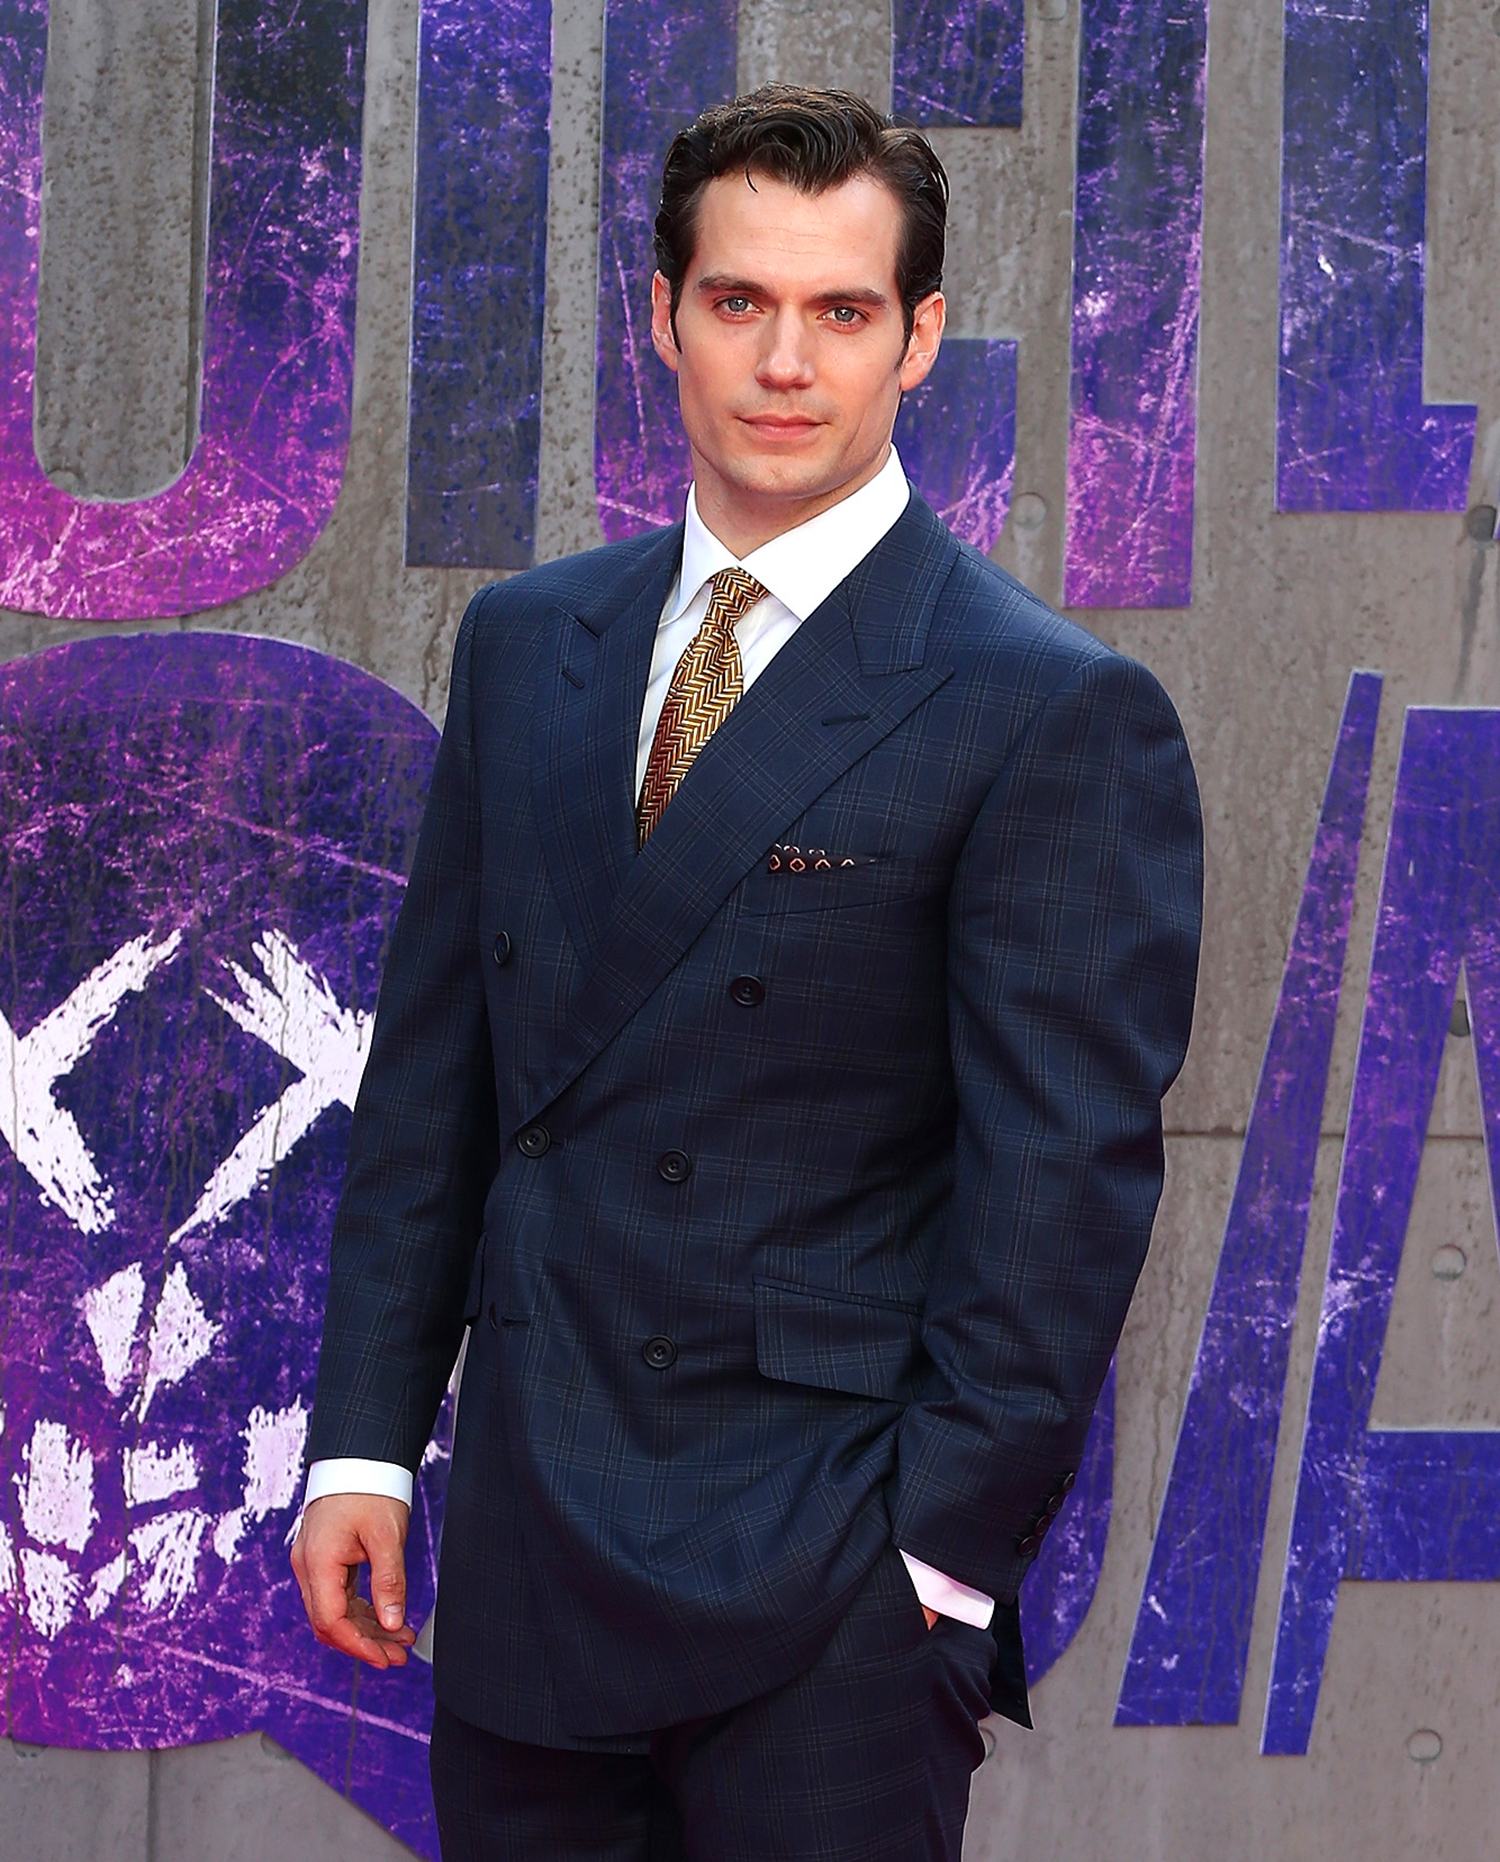 Superman actor Henry Cavill reacts to reports of his death